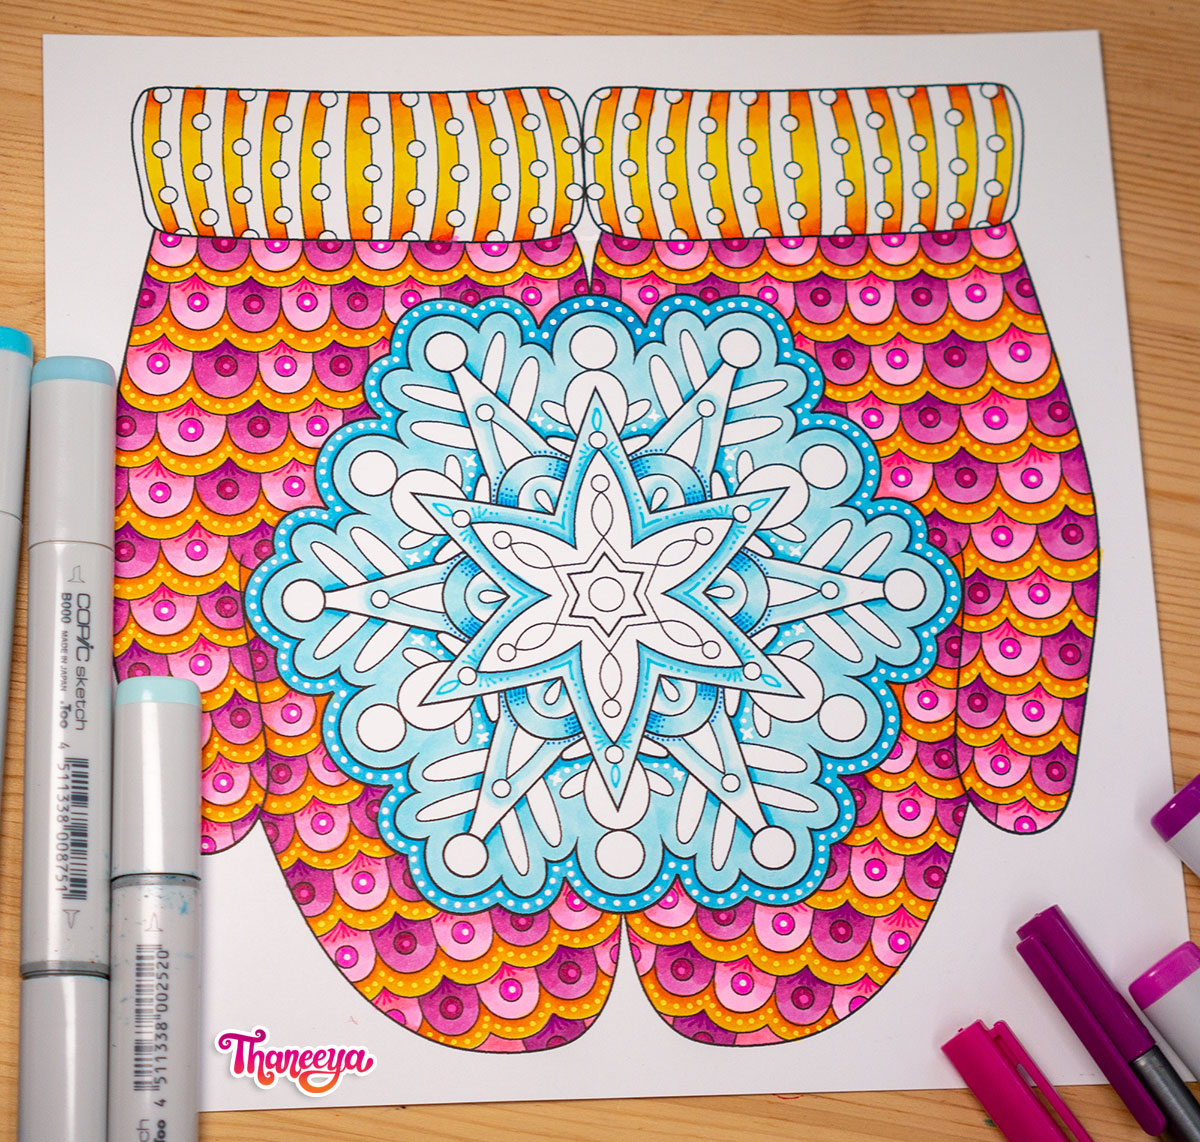 Snowflake in Mittens coloring page from Thaneeya McArdle's Holiday Cheer Coloring Book